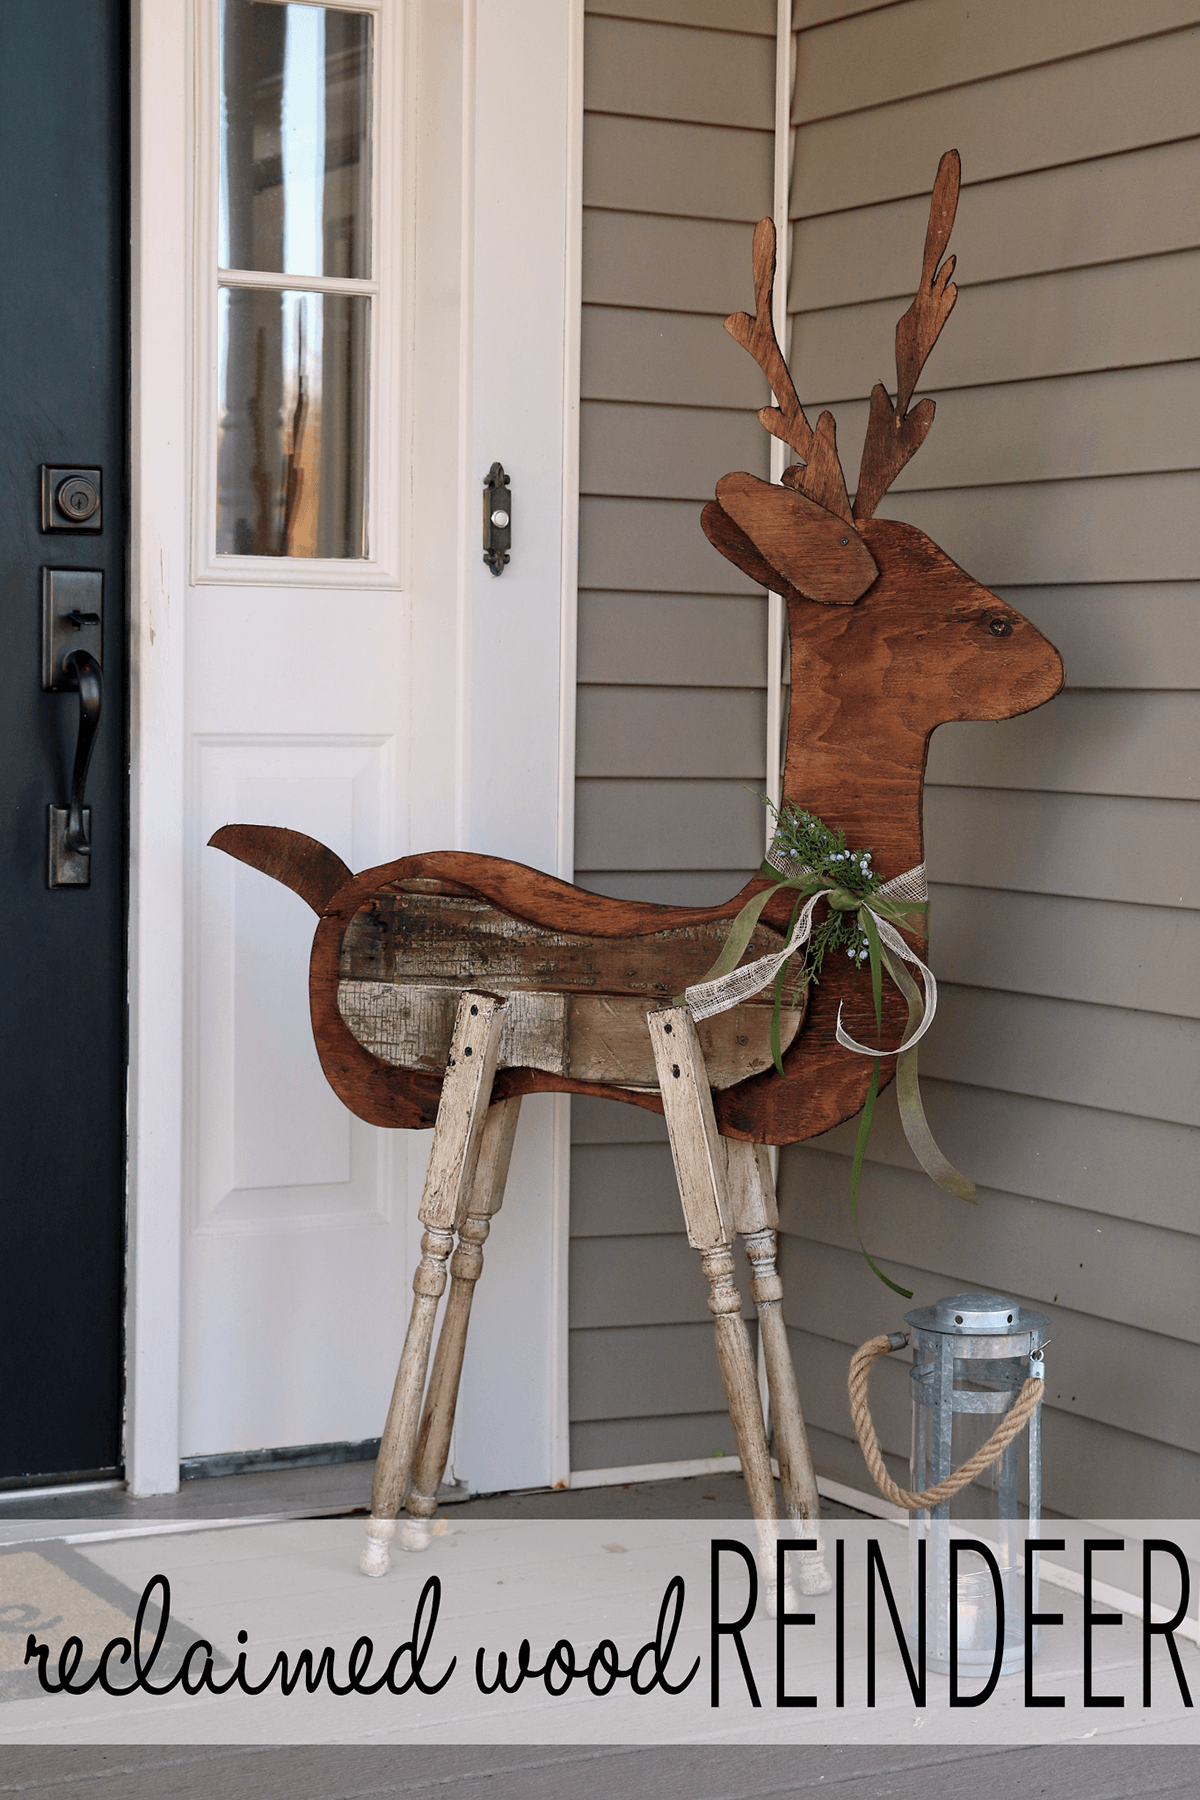 Found Wood and Table Leg Reindeer